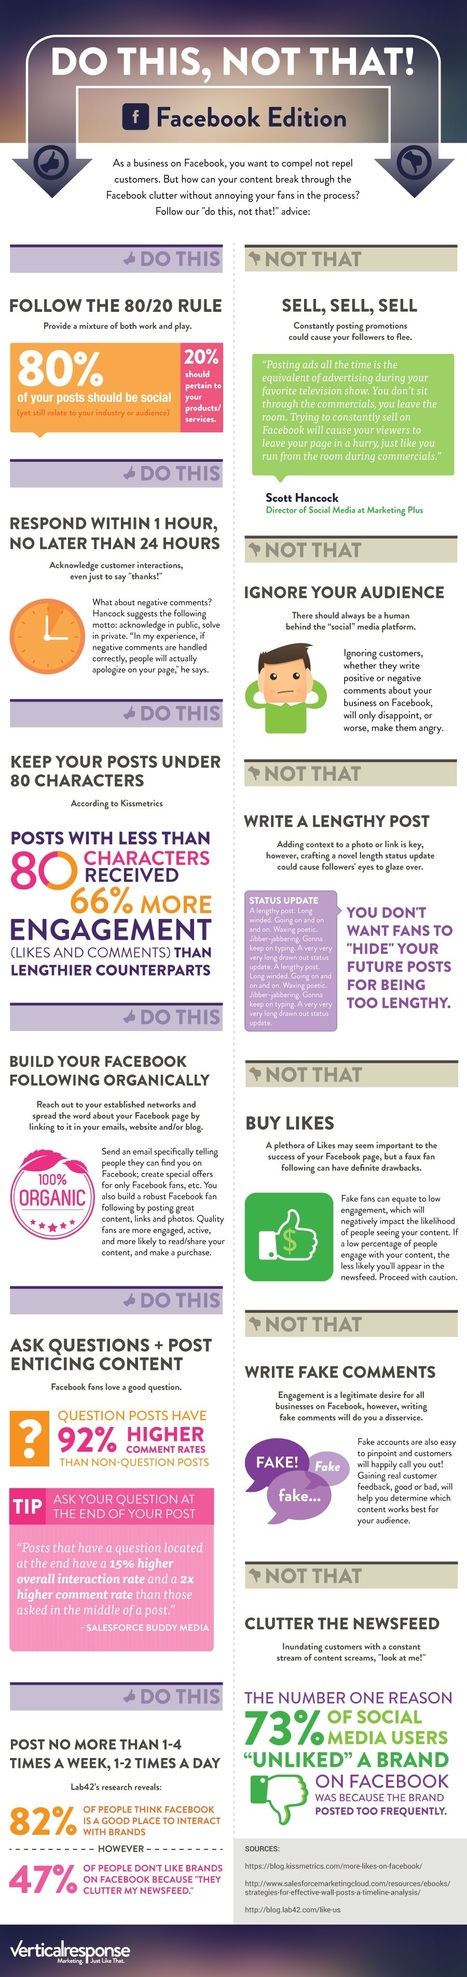 The Dos and Don'ts of Facebook Marketing | Les Médias Sociaux pour l'entreprise | Scoop.it